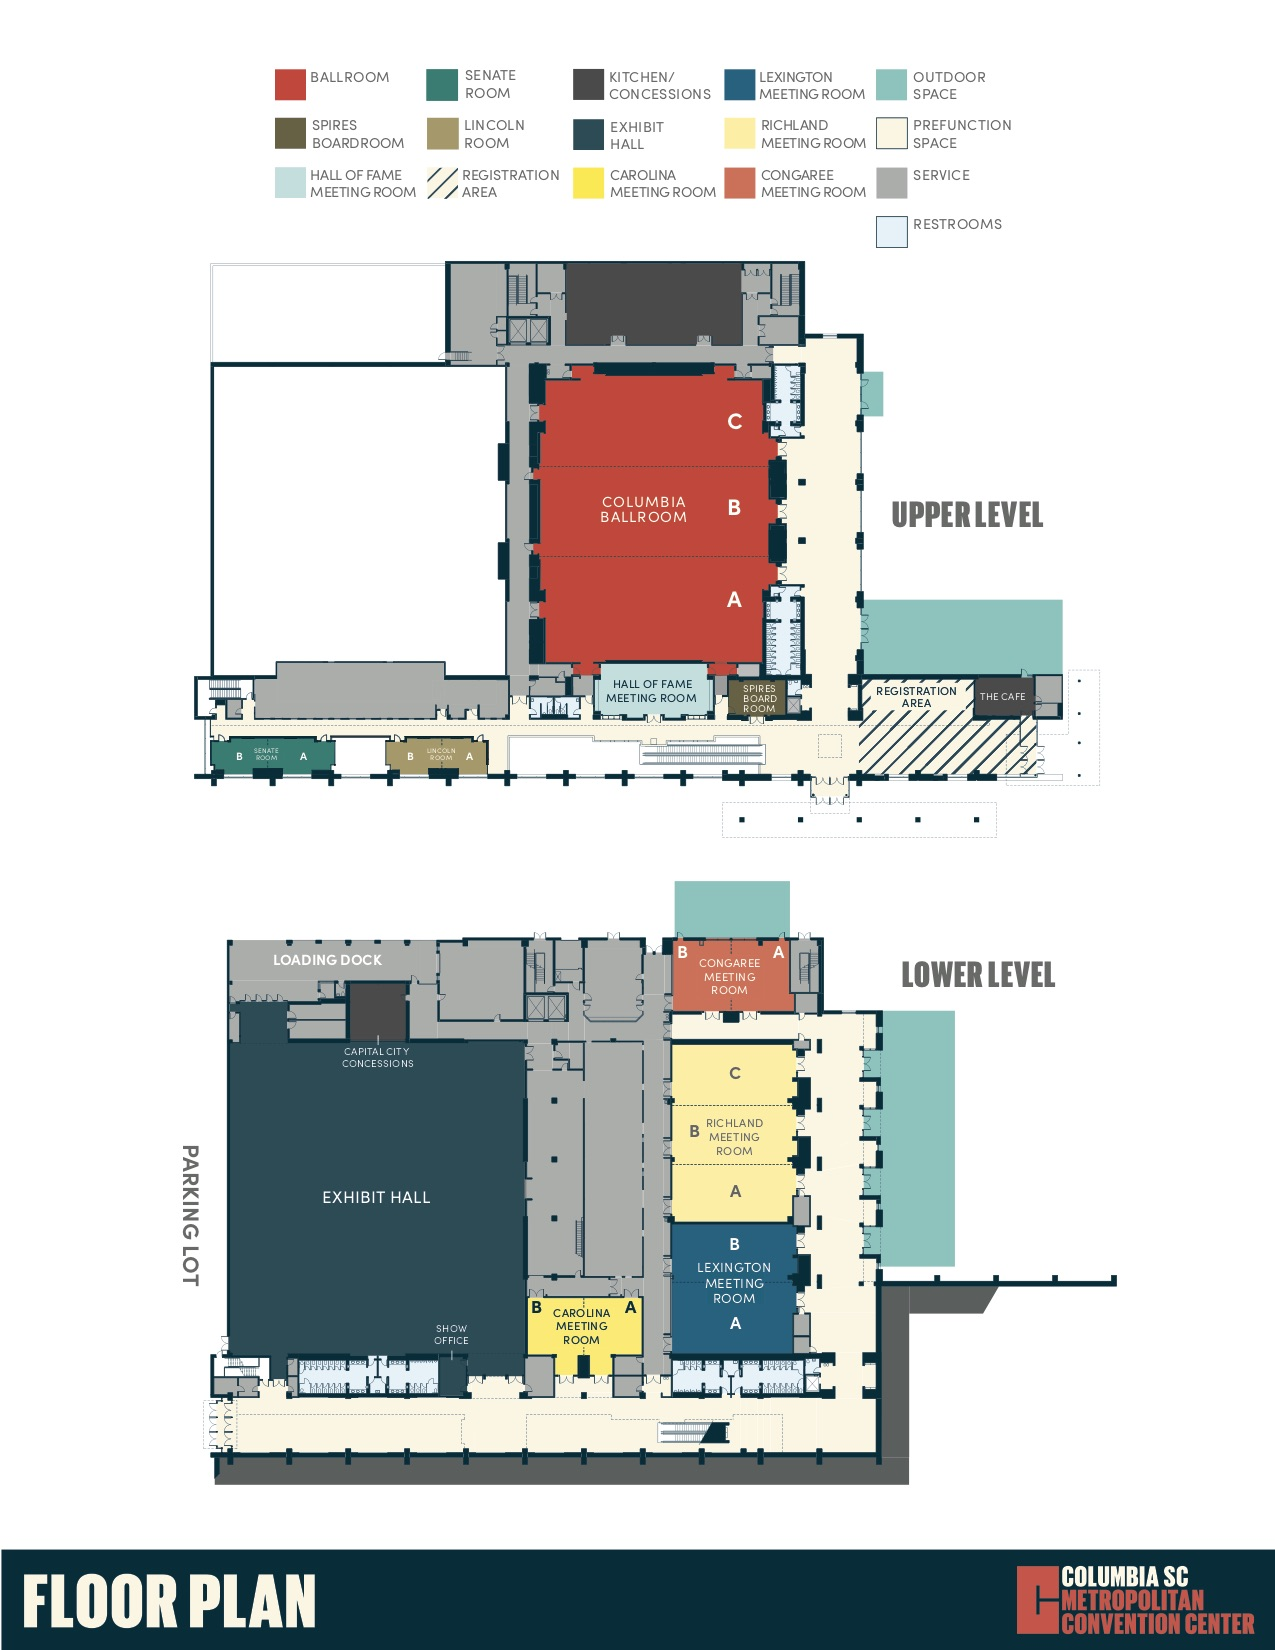 Upper & Lower Level Level Floor Plan